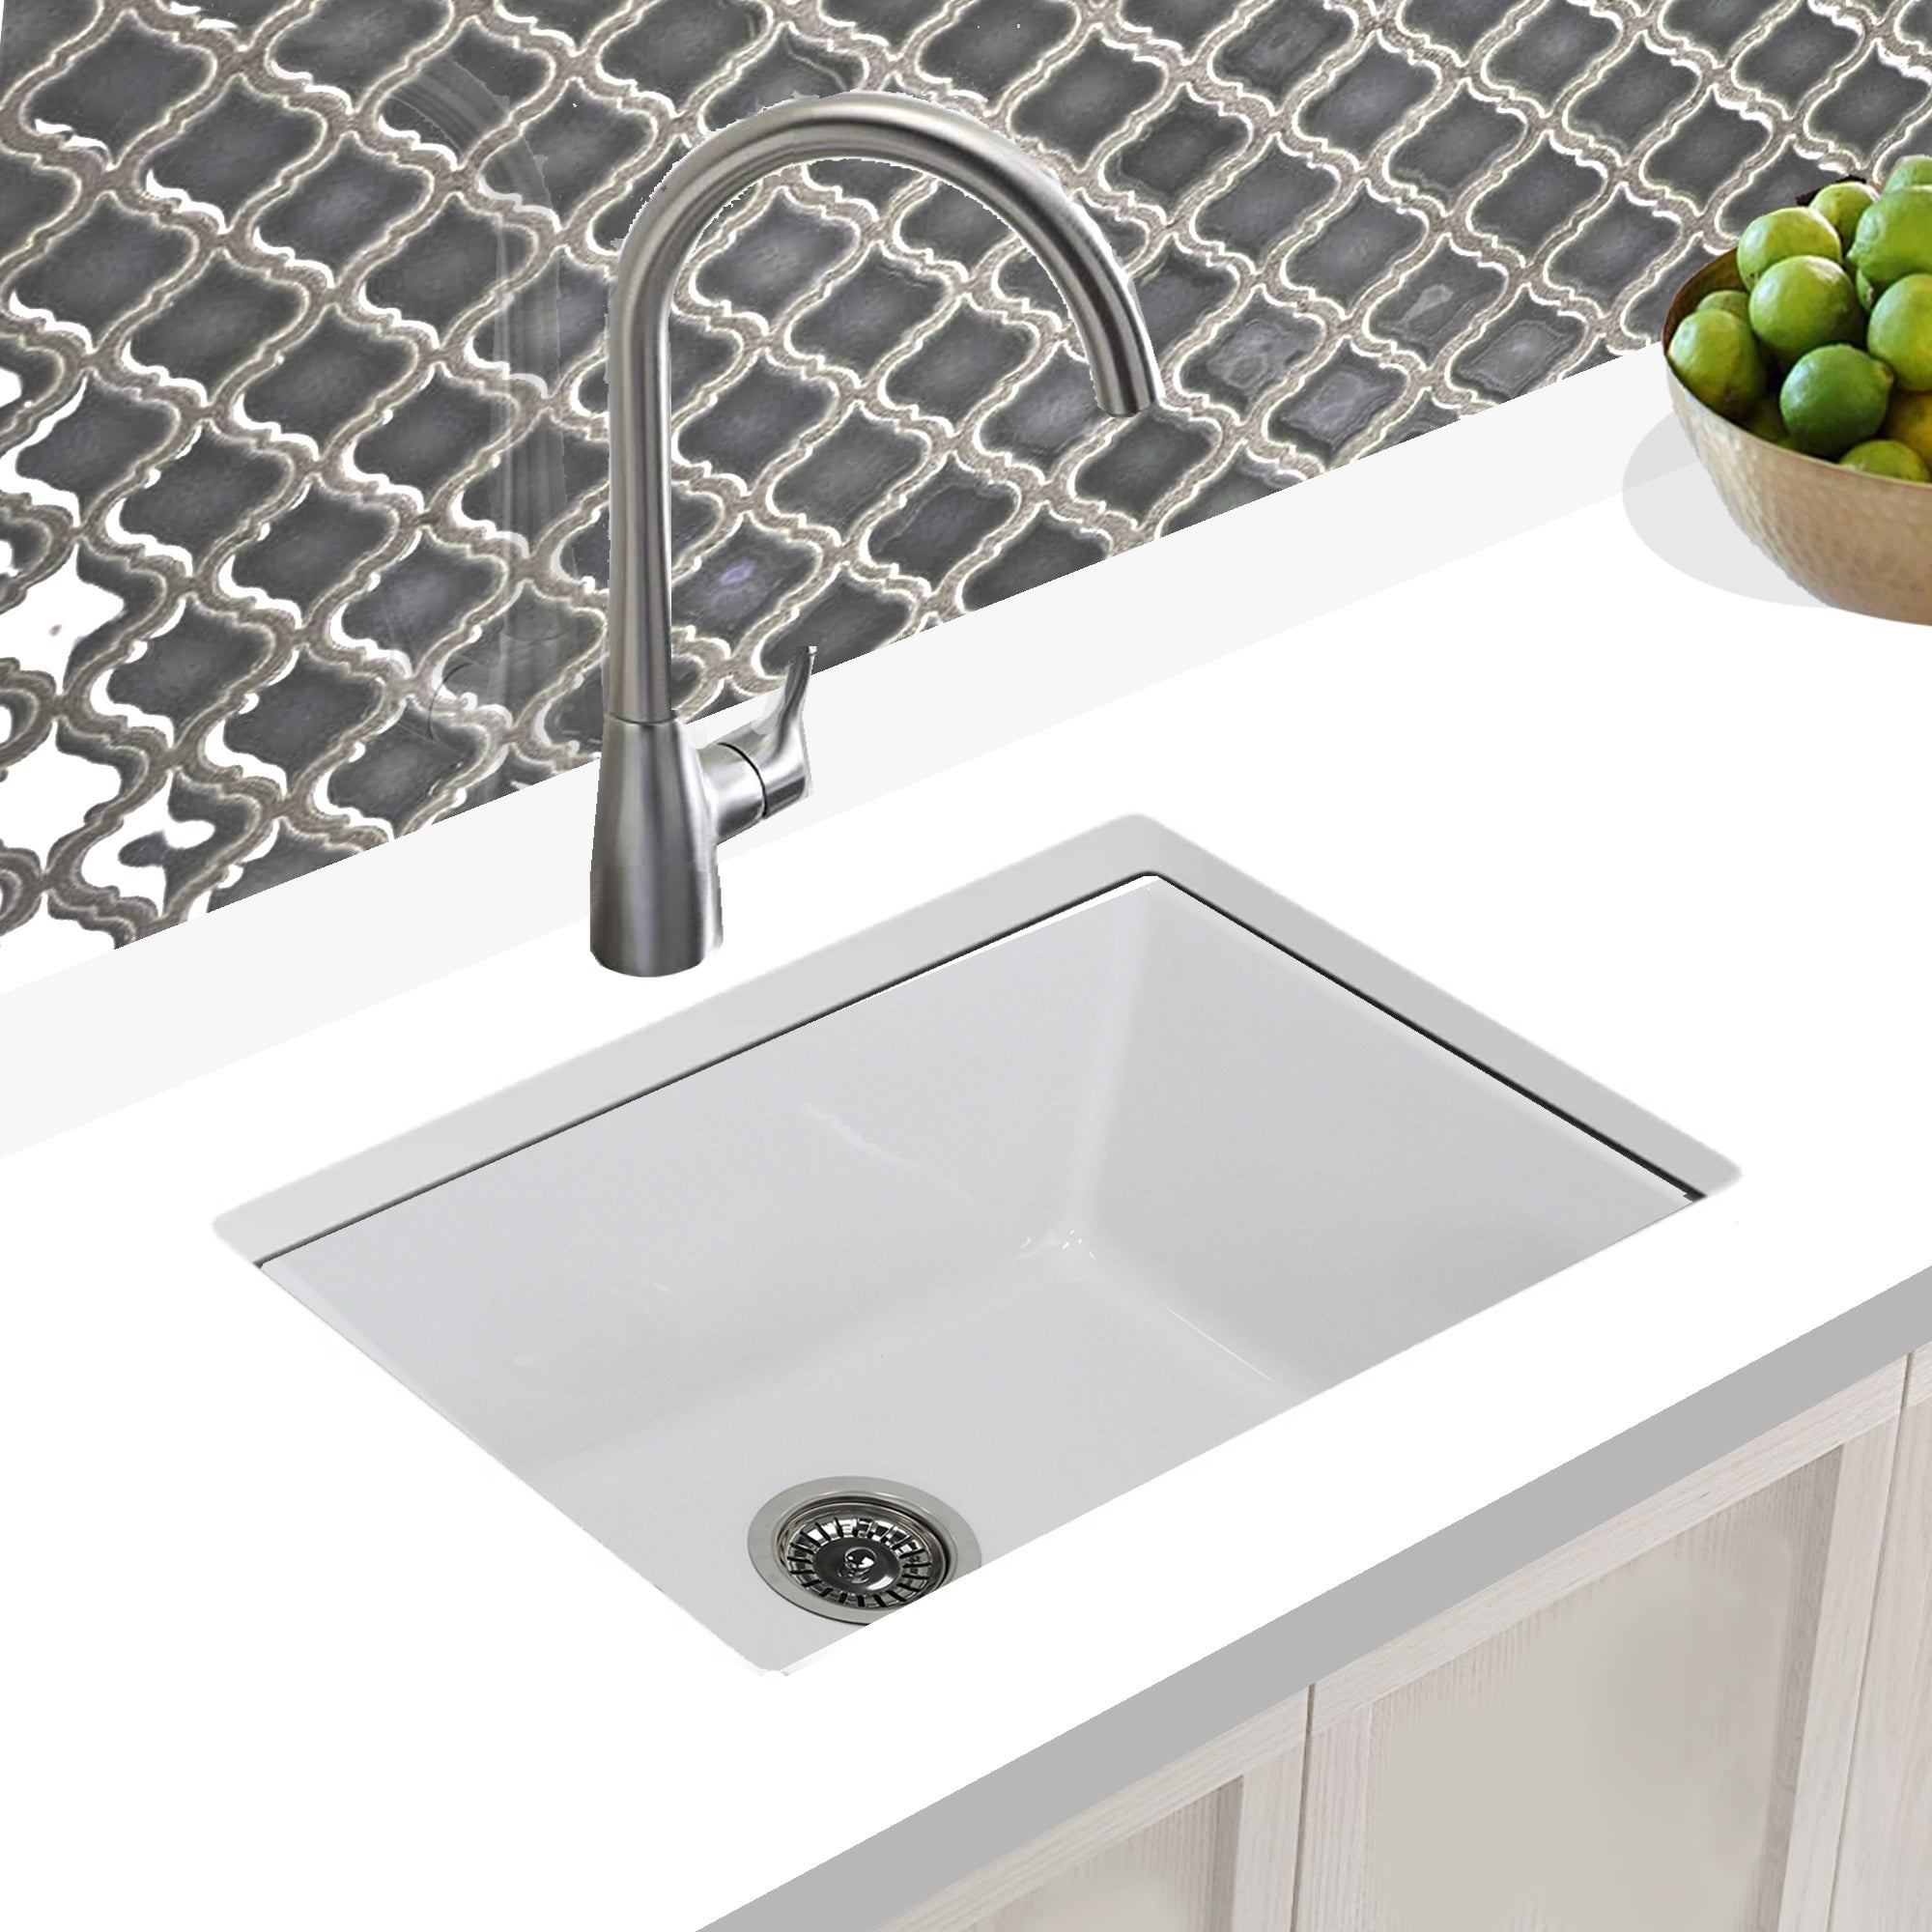 Highpoint Collection 24 Inch Undermount Fireclay Kitchen Sink - Made in  Italy - 24 x 18 x10 inches